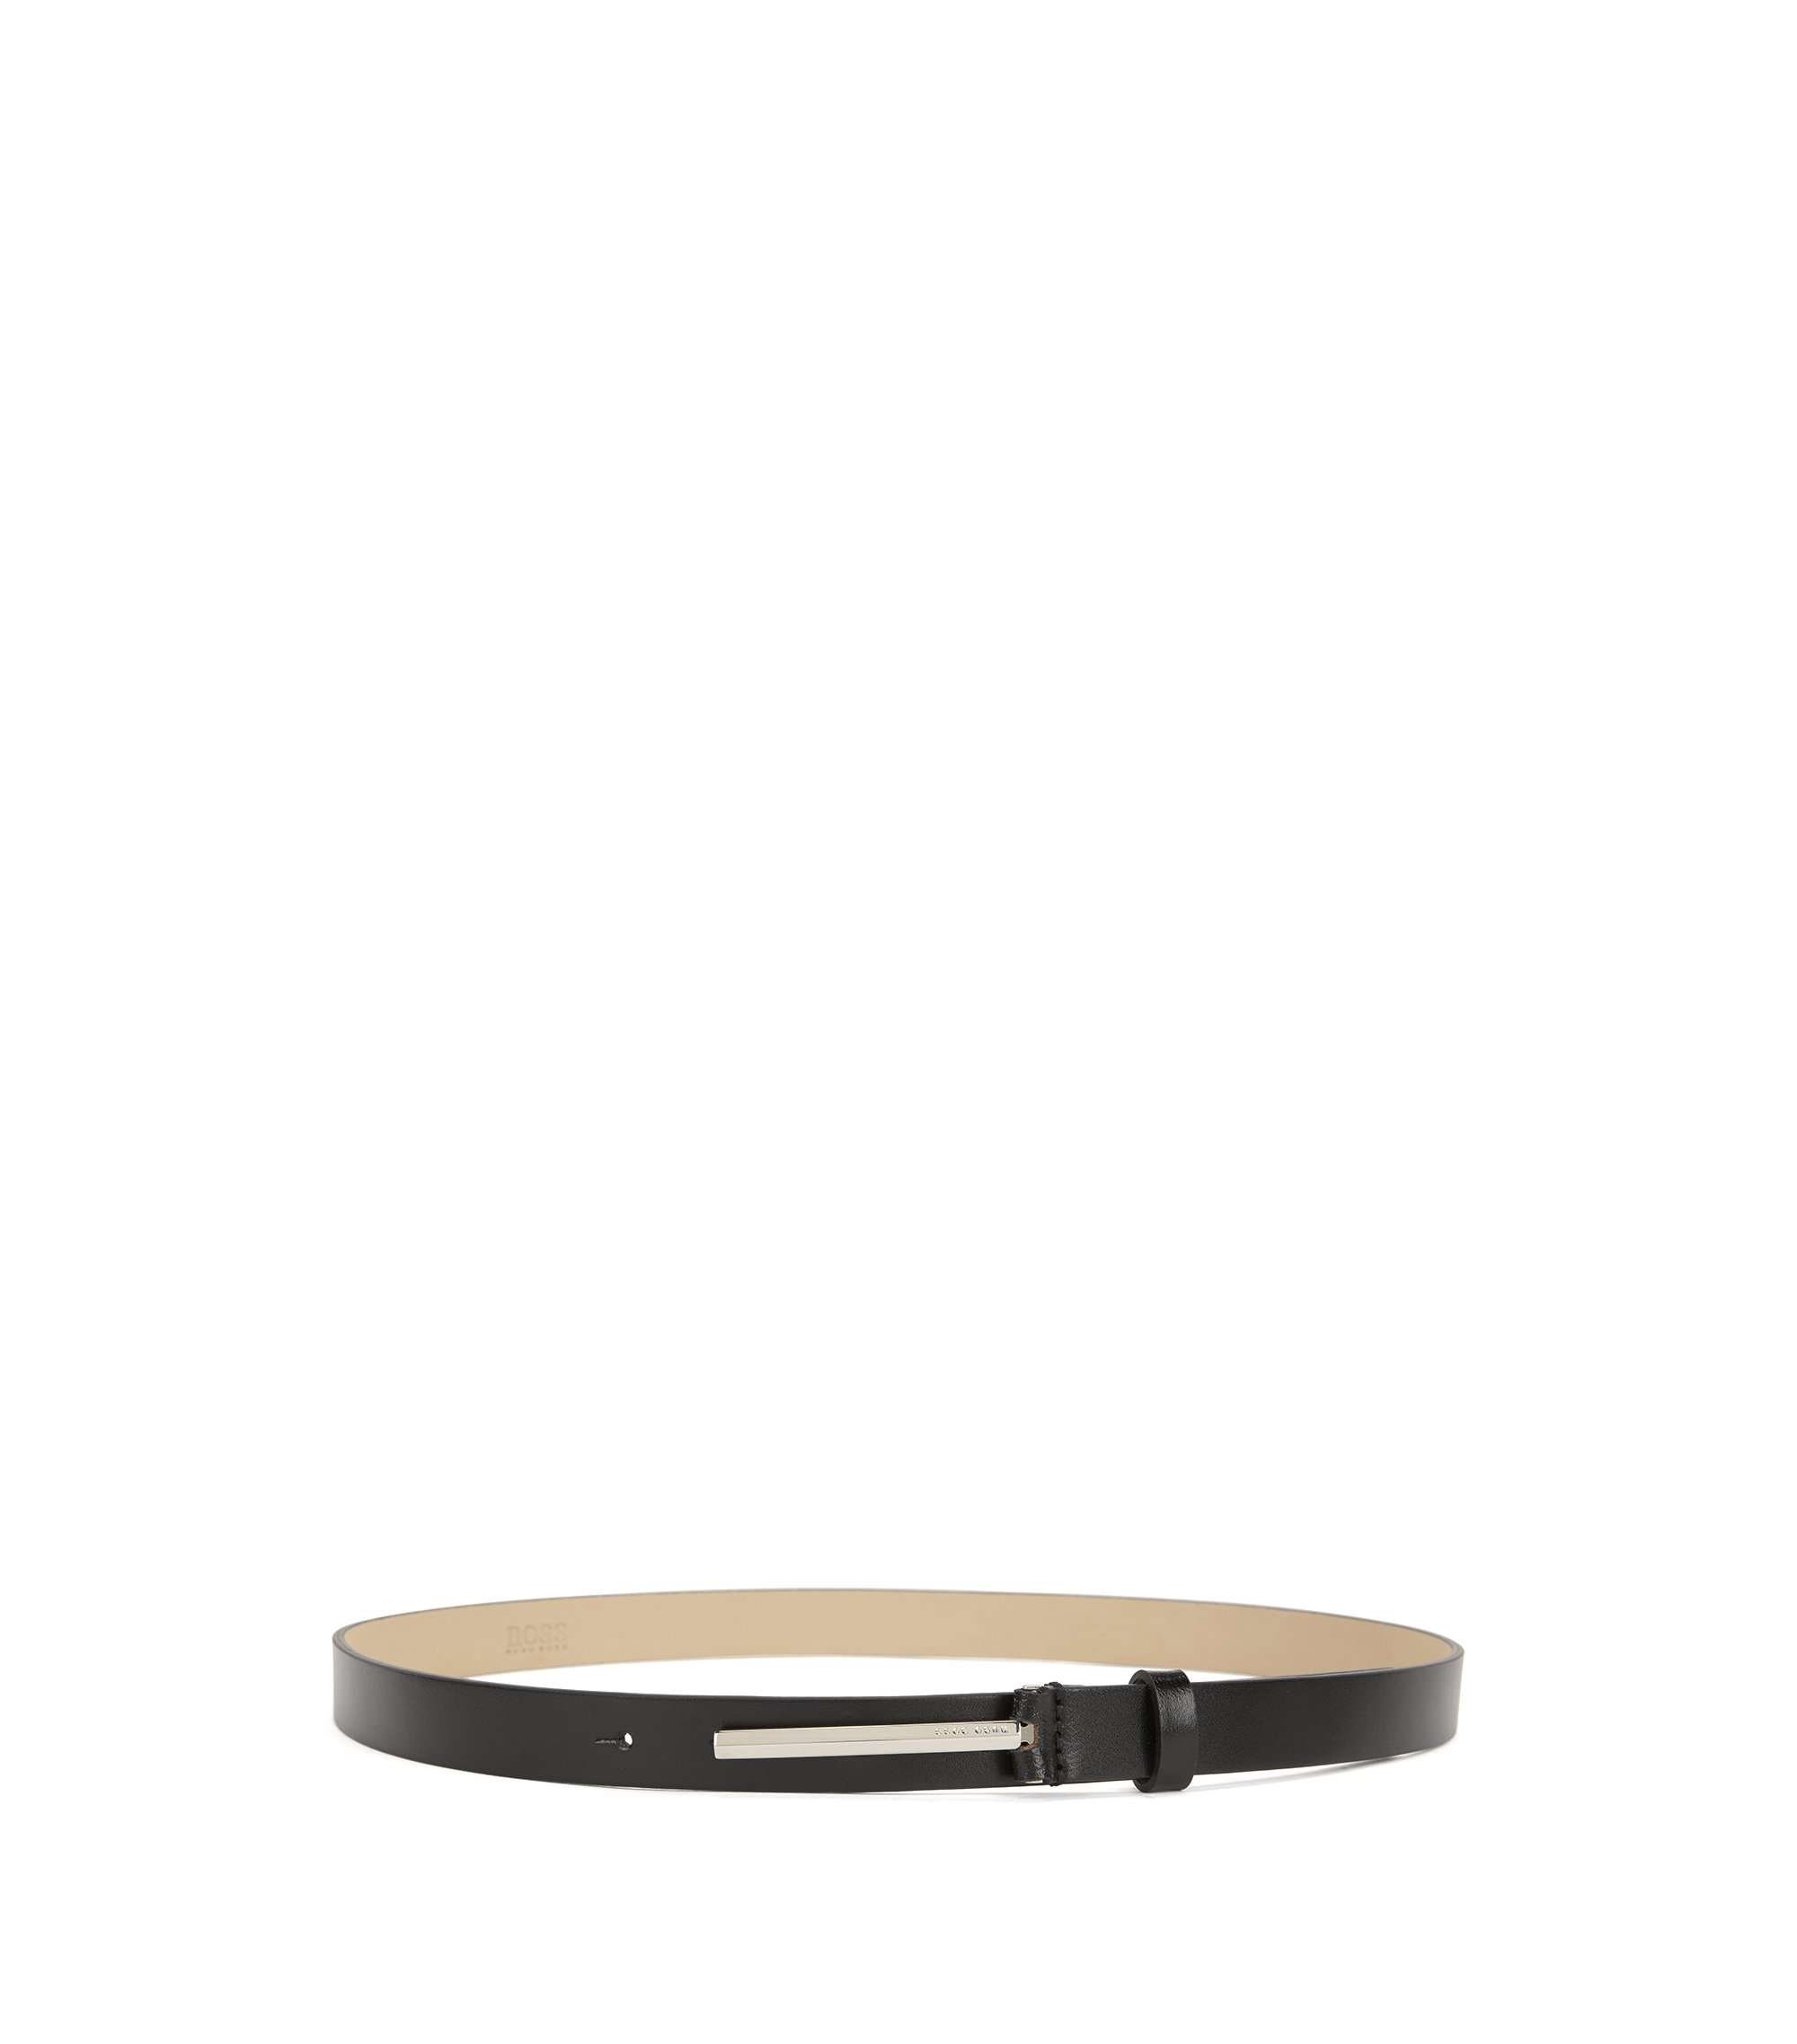 Italian-leather belt with signature pin closure, Black